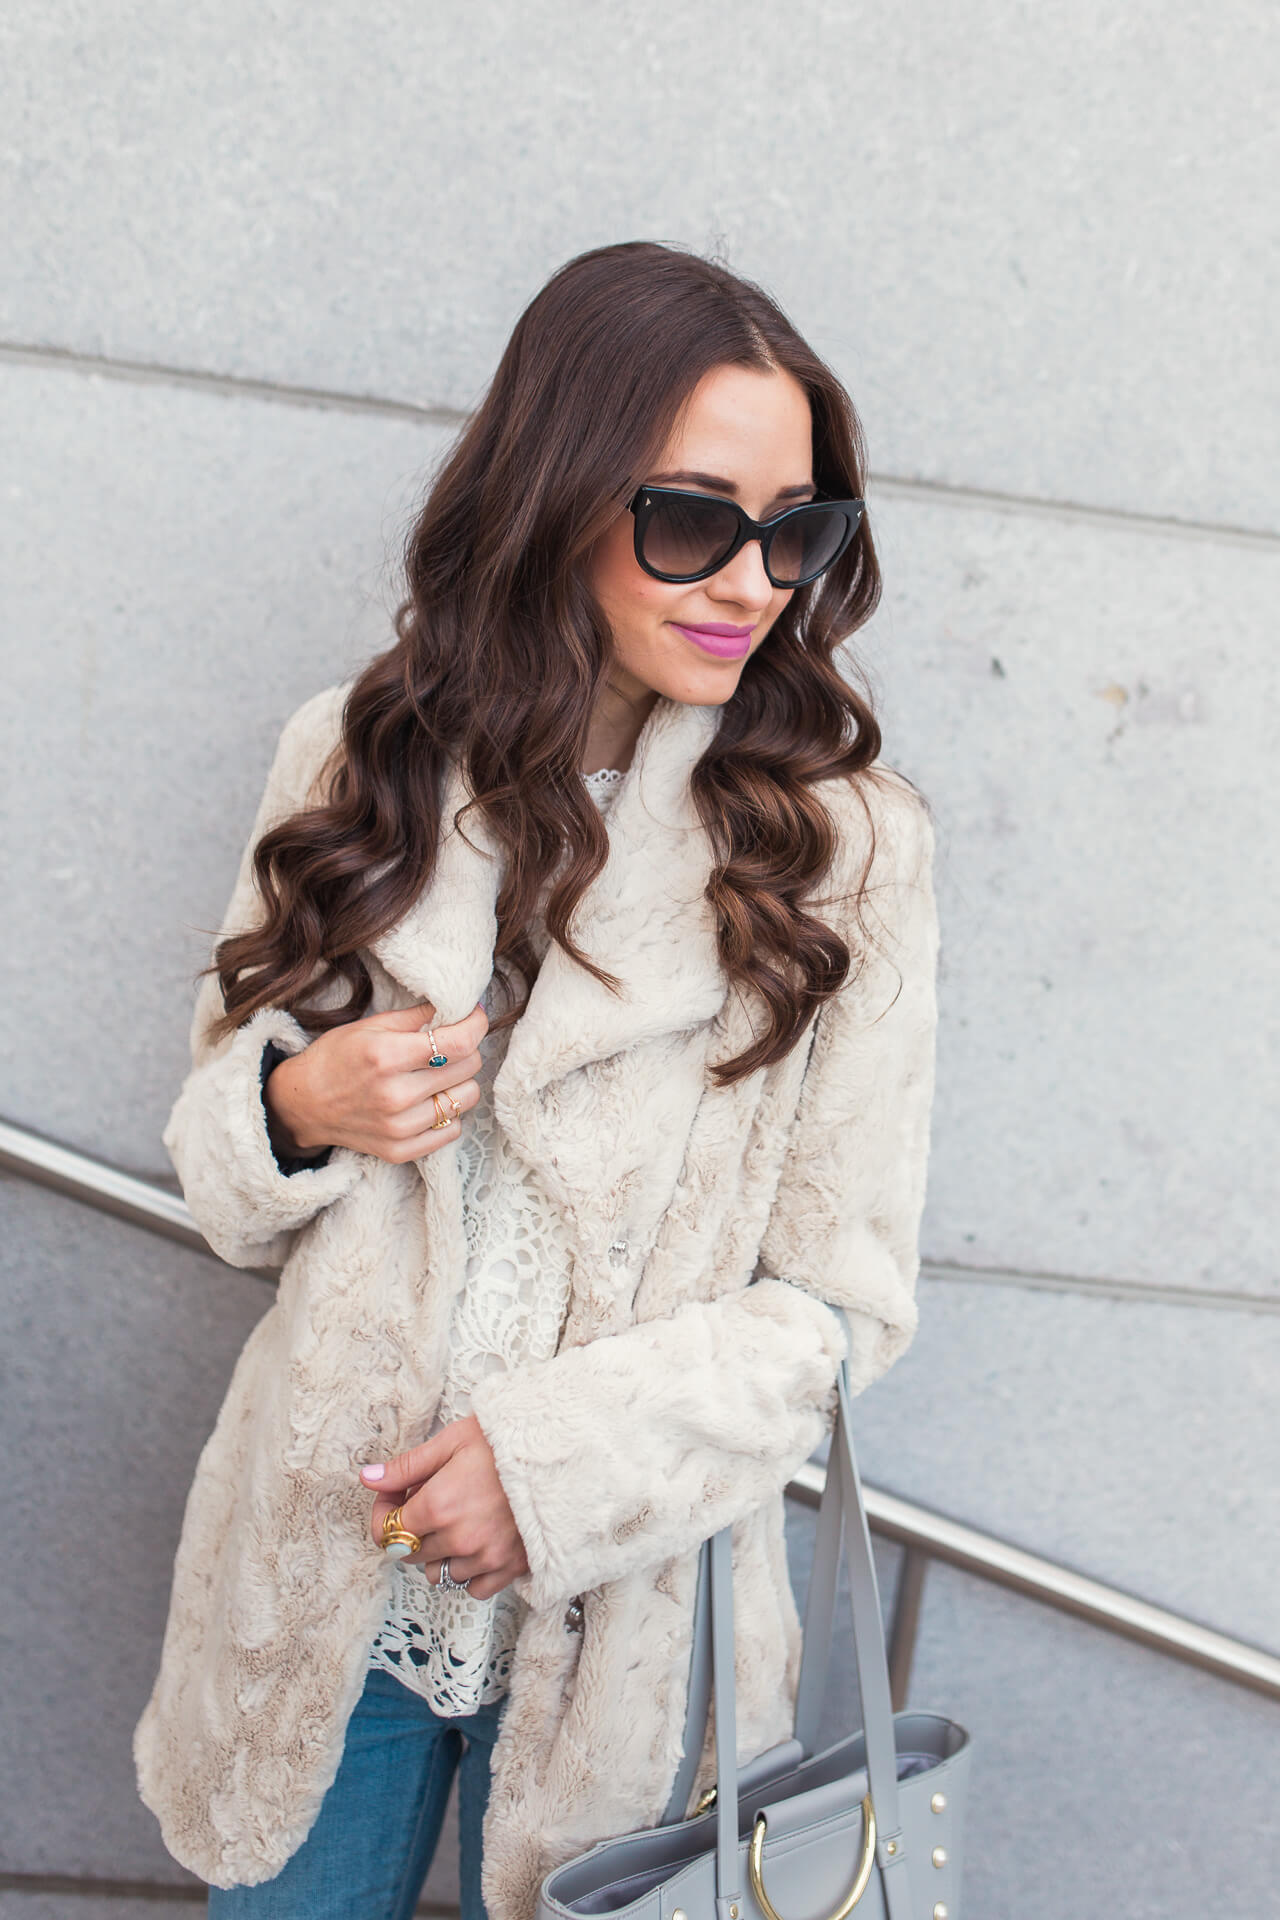 A casual winter outfit - M Loves M @marmar